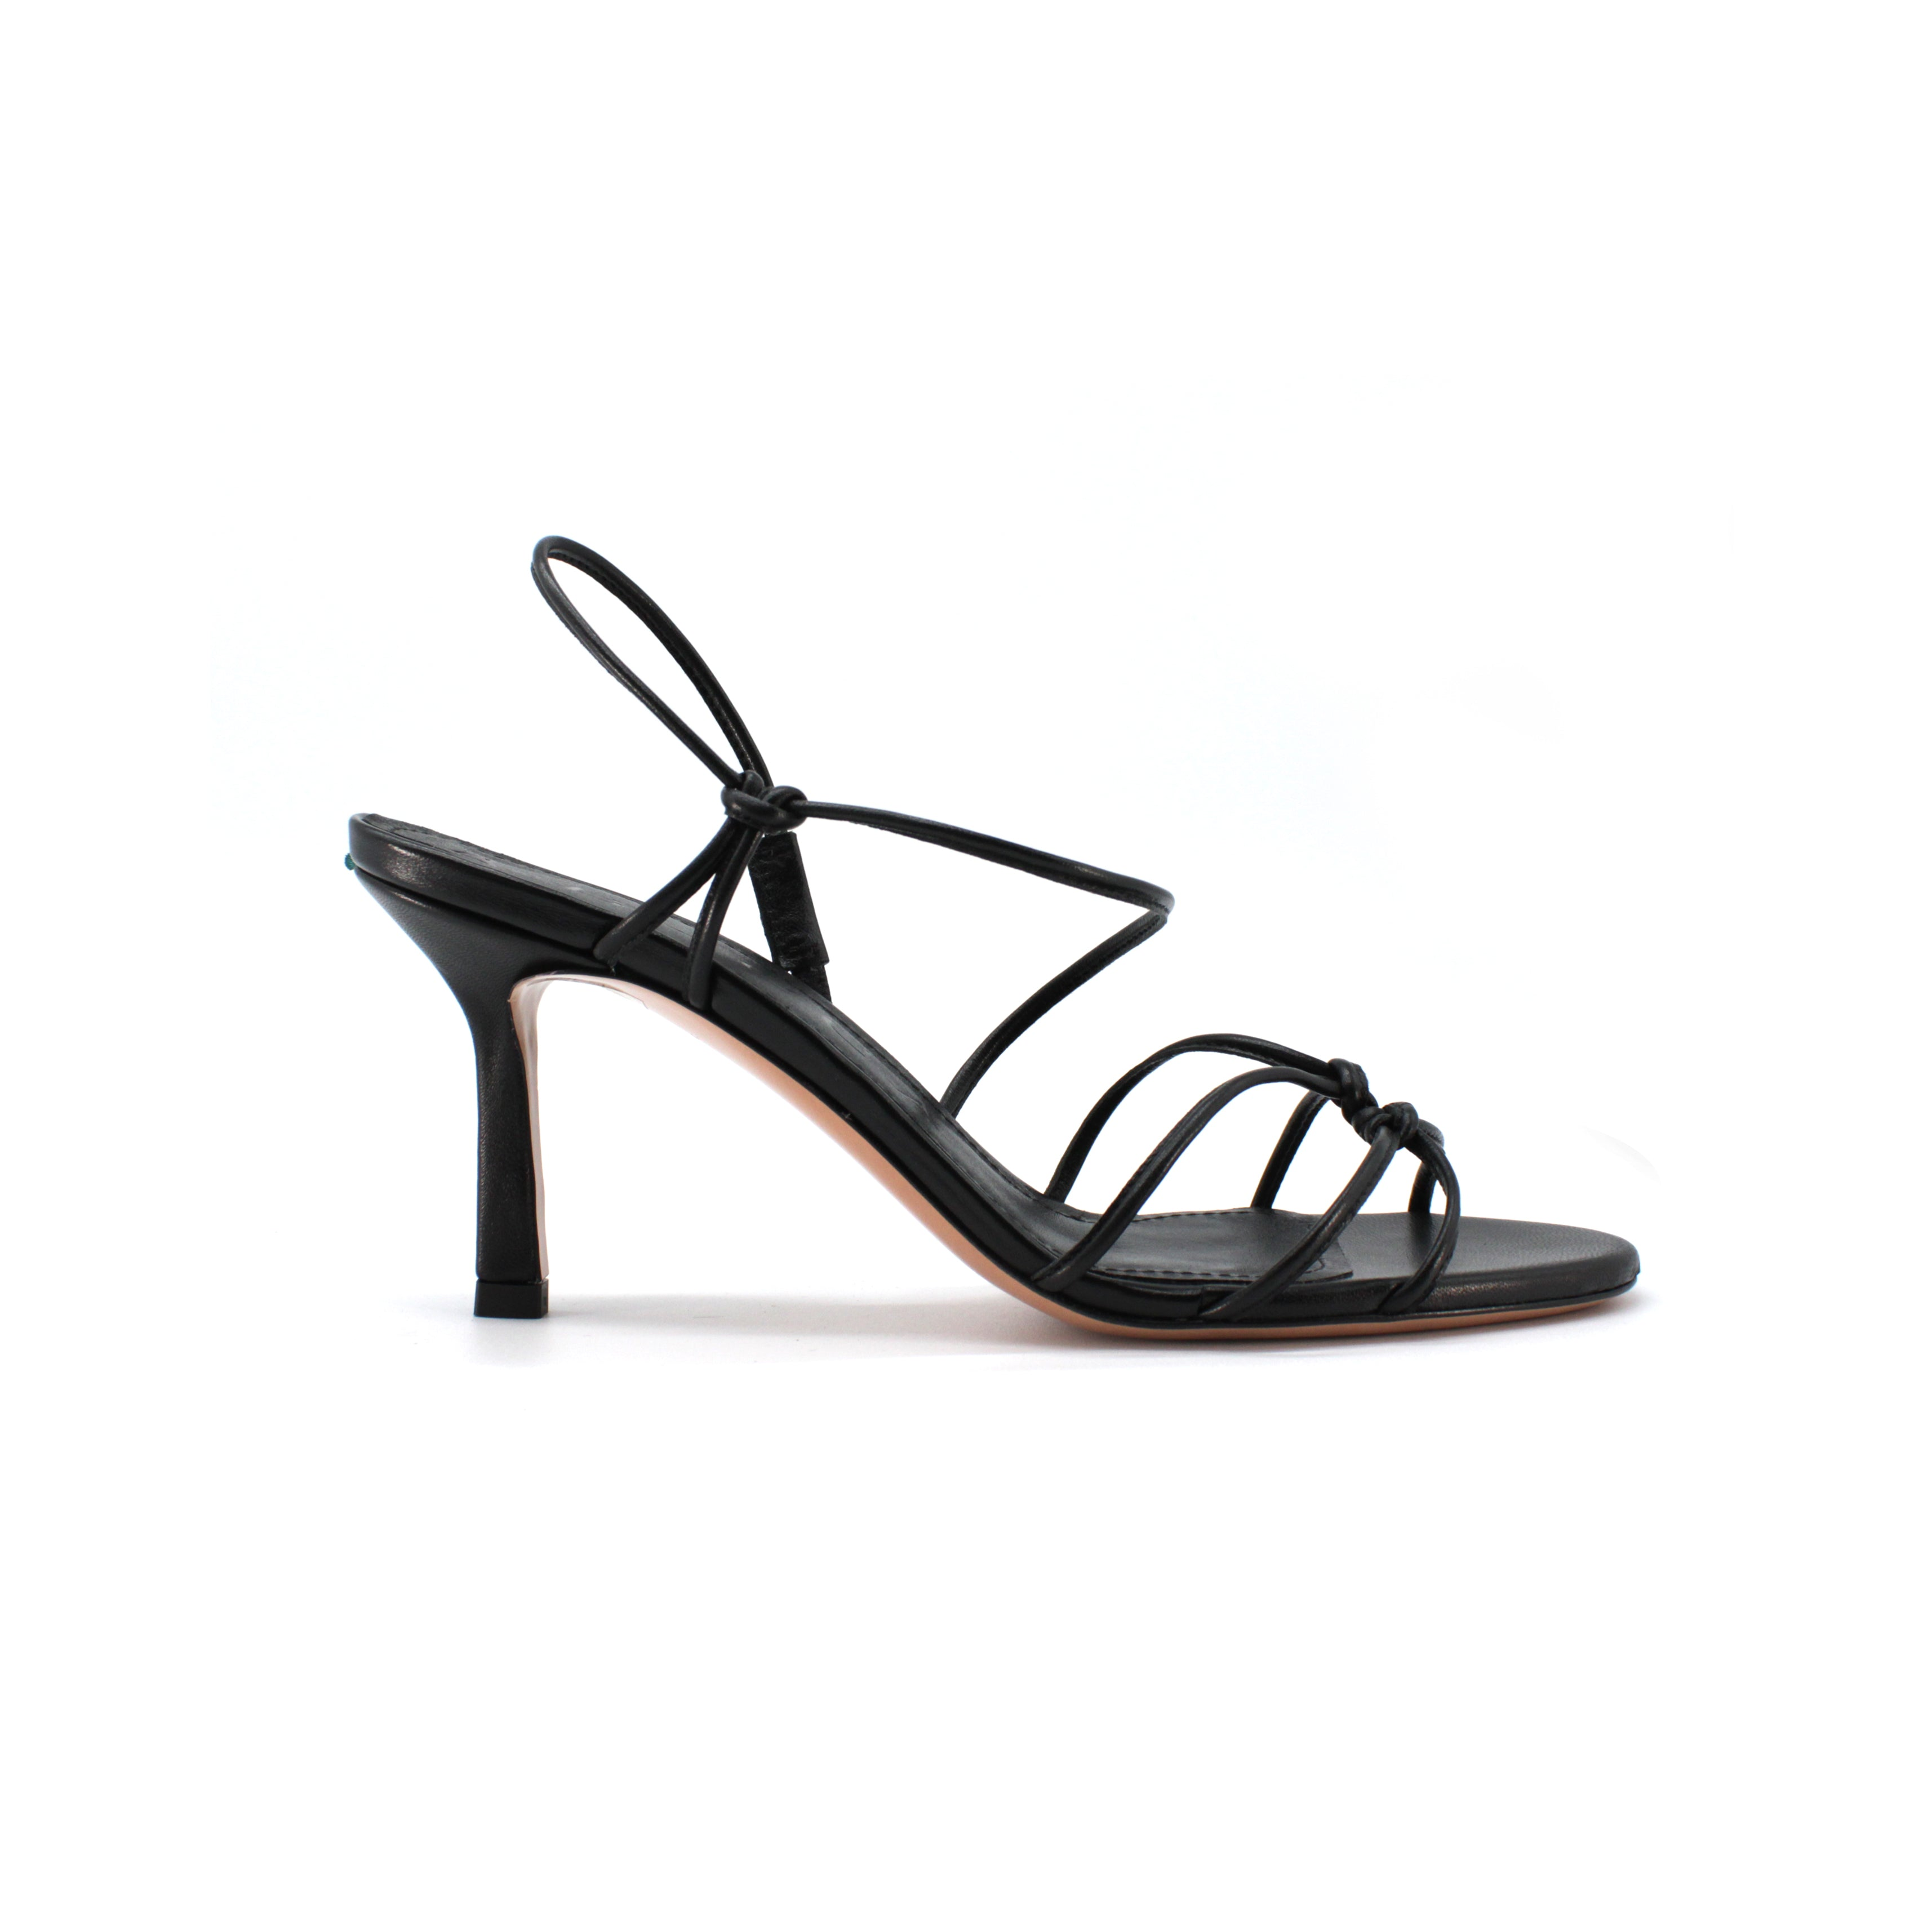 Sandalo mignon in nappa color nero